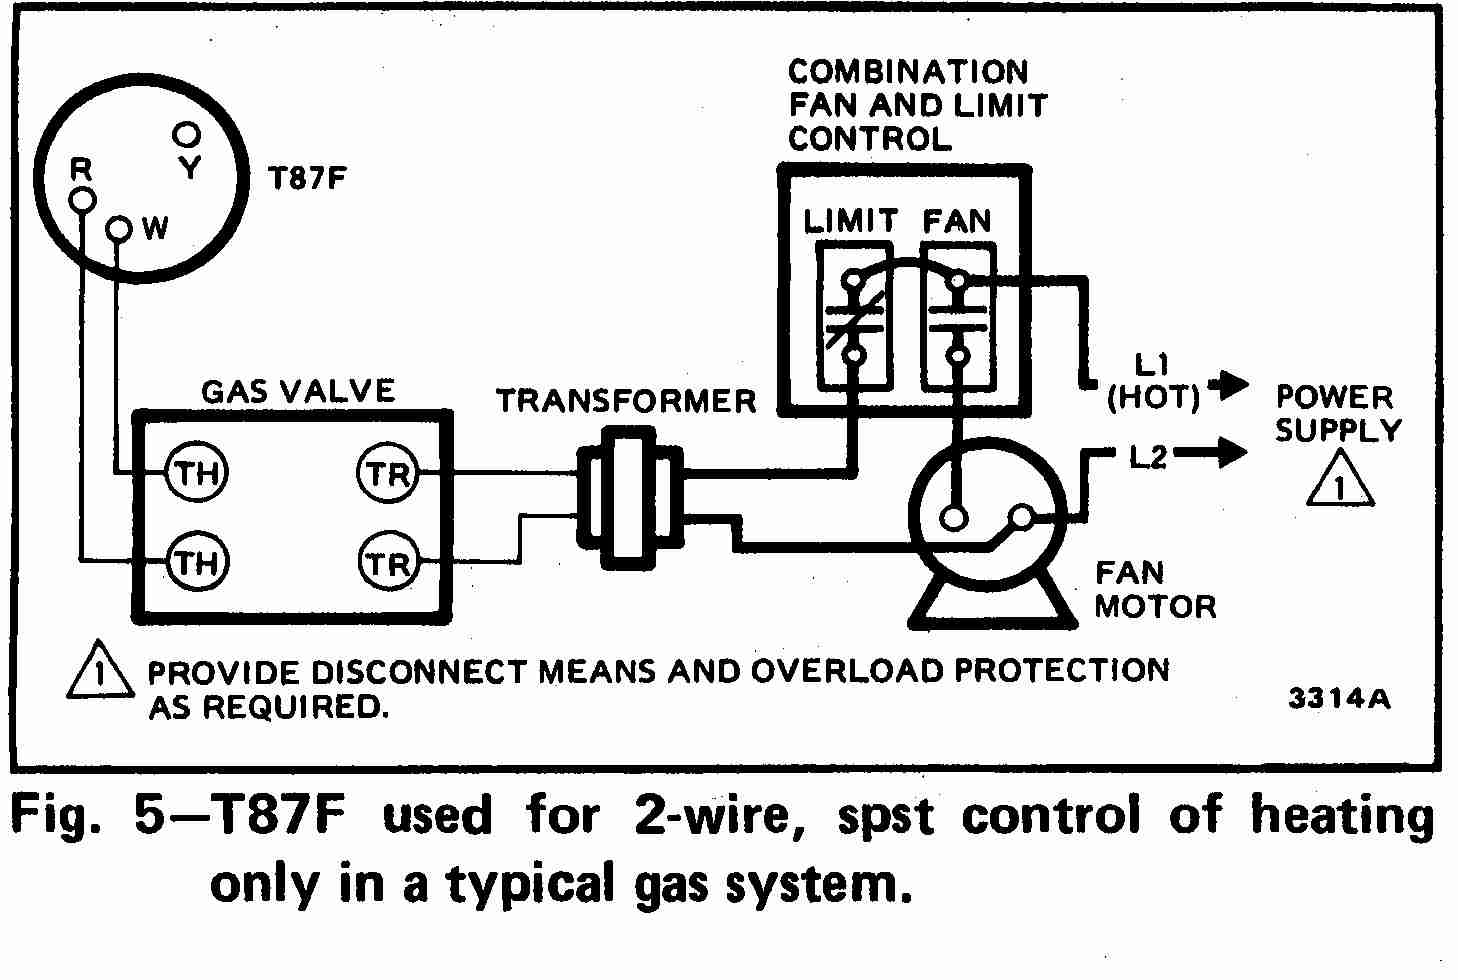 TT_T87F_0002_2Wg_DJF room thermostat wiring diagrams for hvac systems lennox air handler wiring diagram at gsmx.co